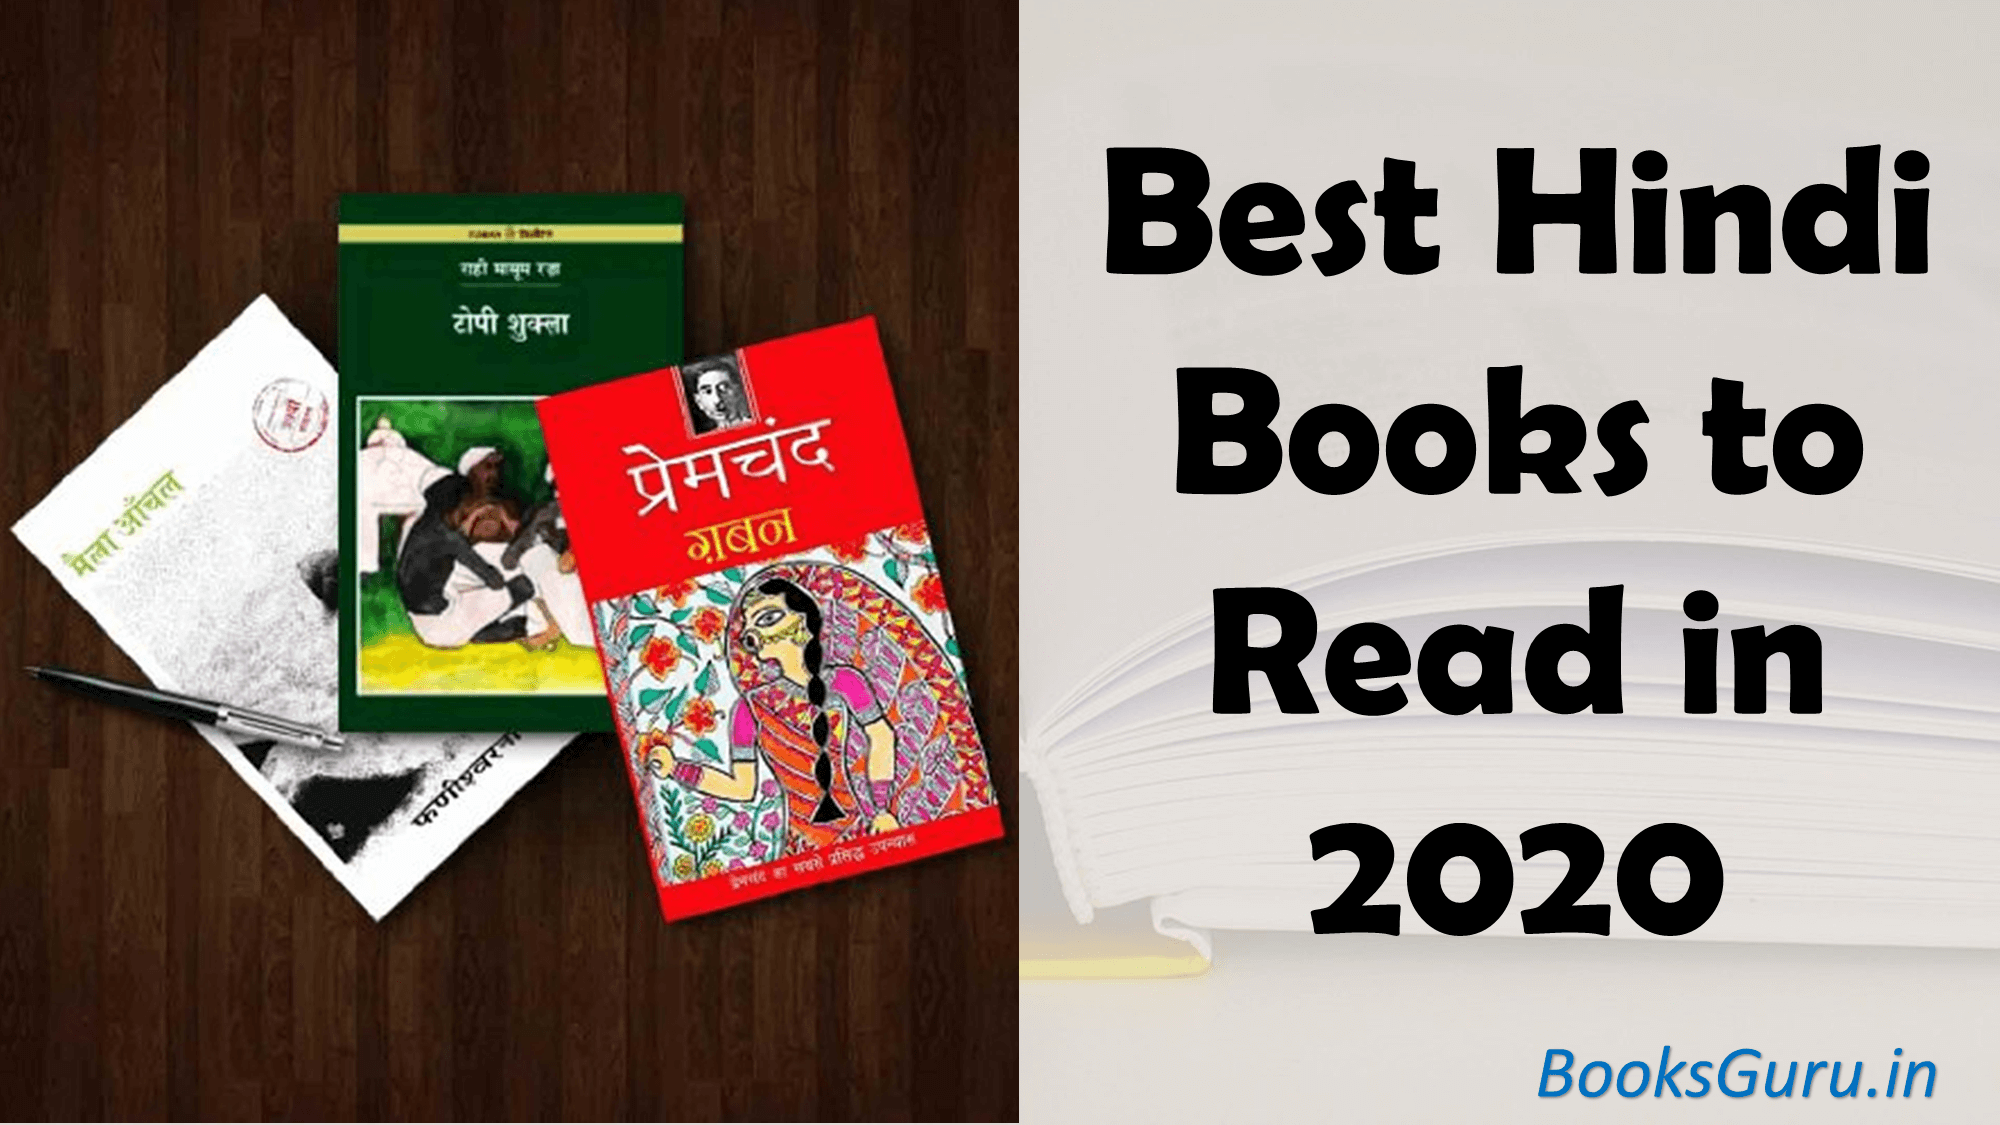 Best Hindi Books to Read in 2020